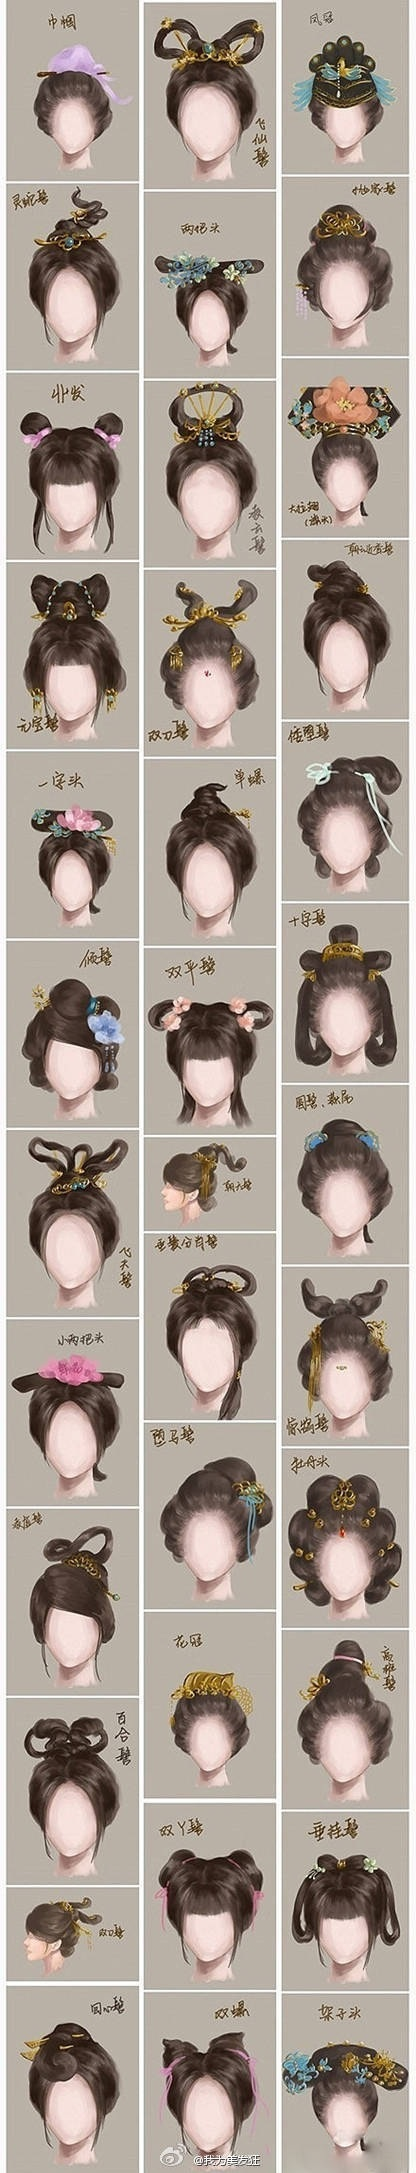 Ancient Chinese Women Hairstyle Tradition Chinese